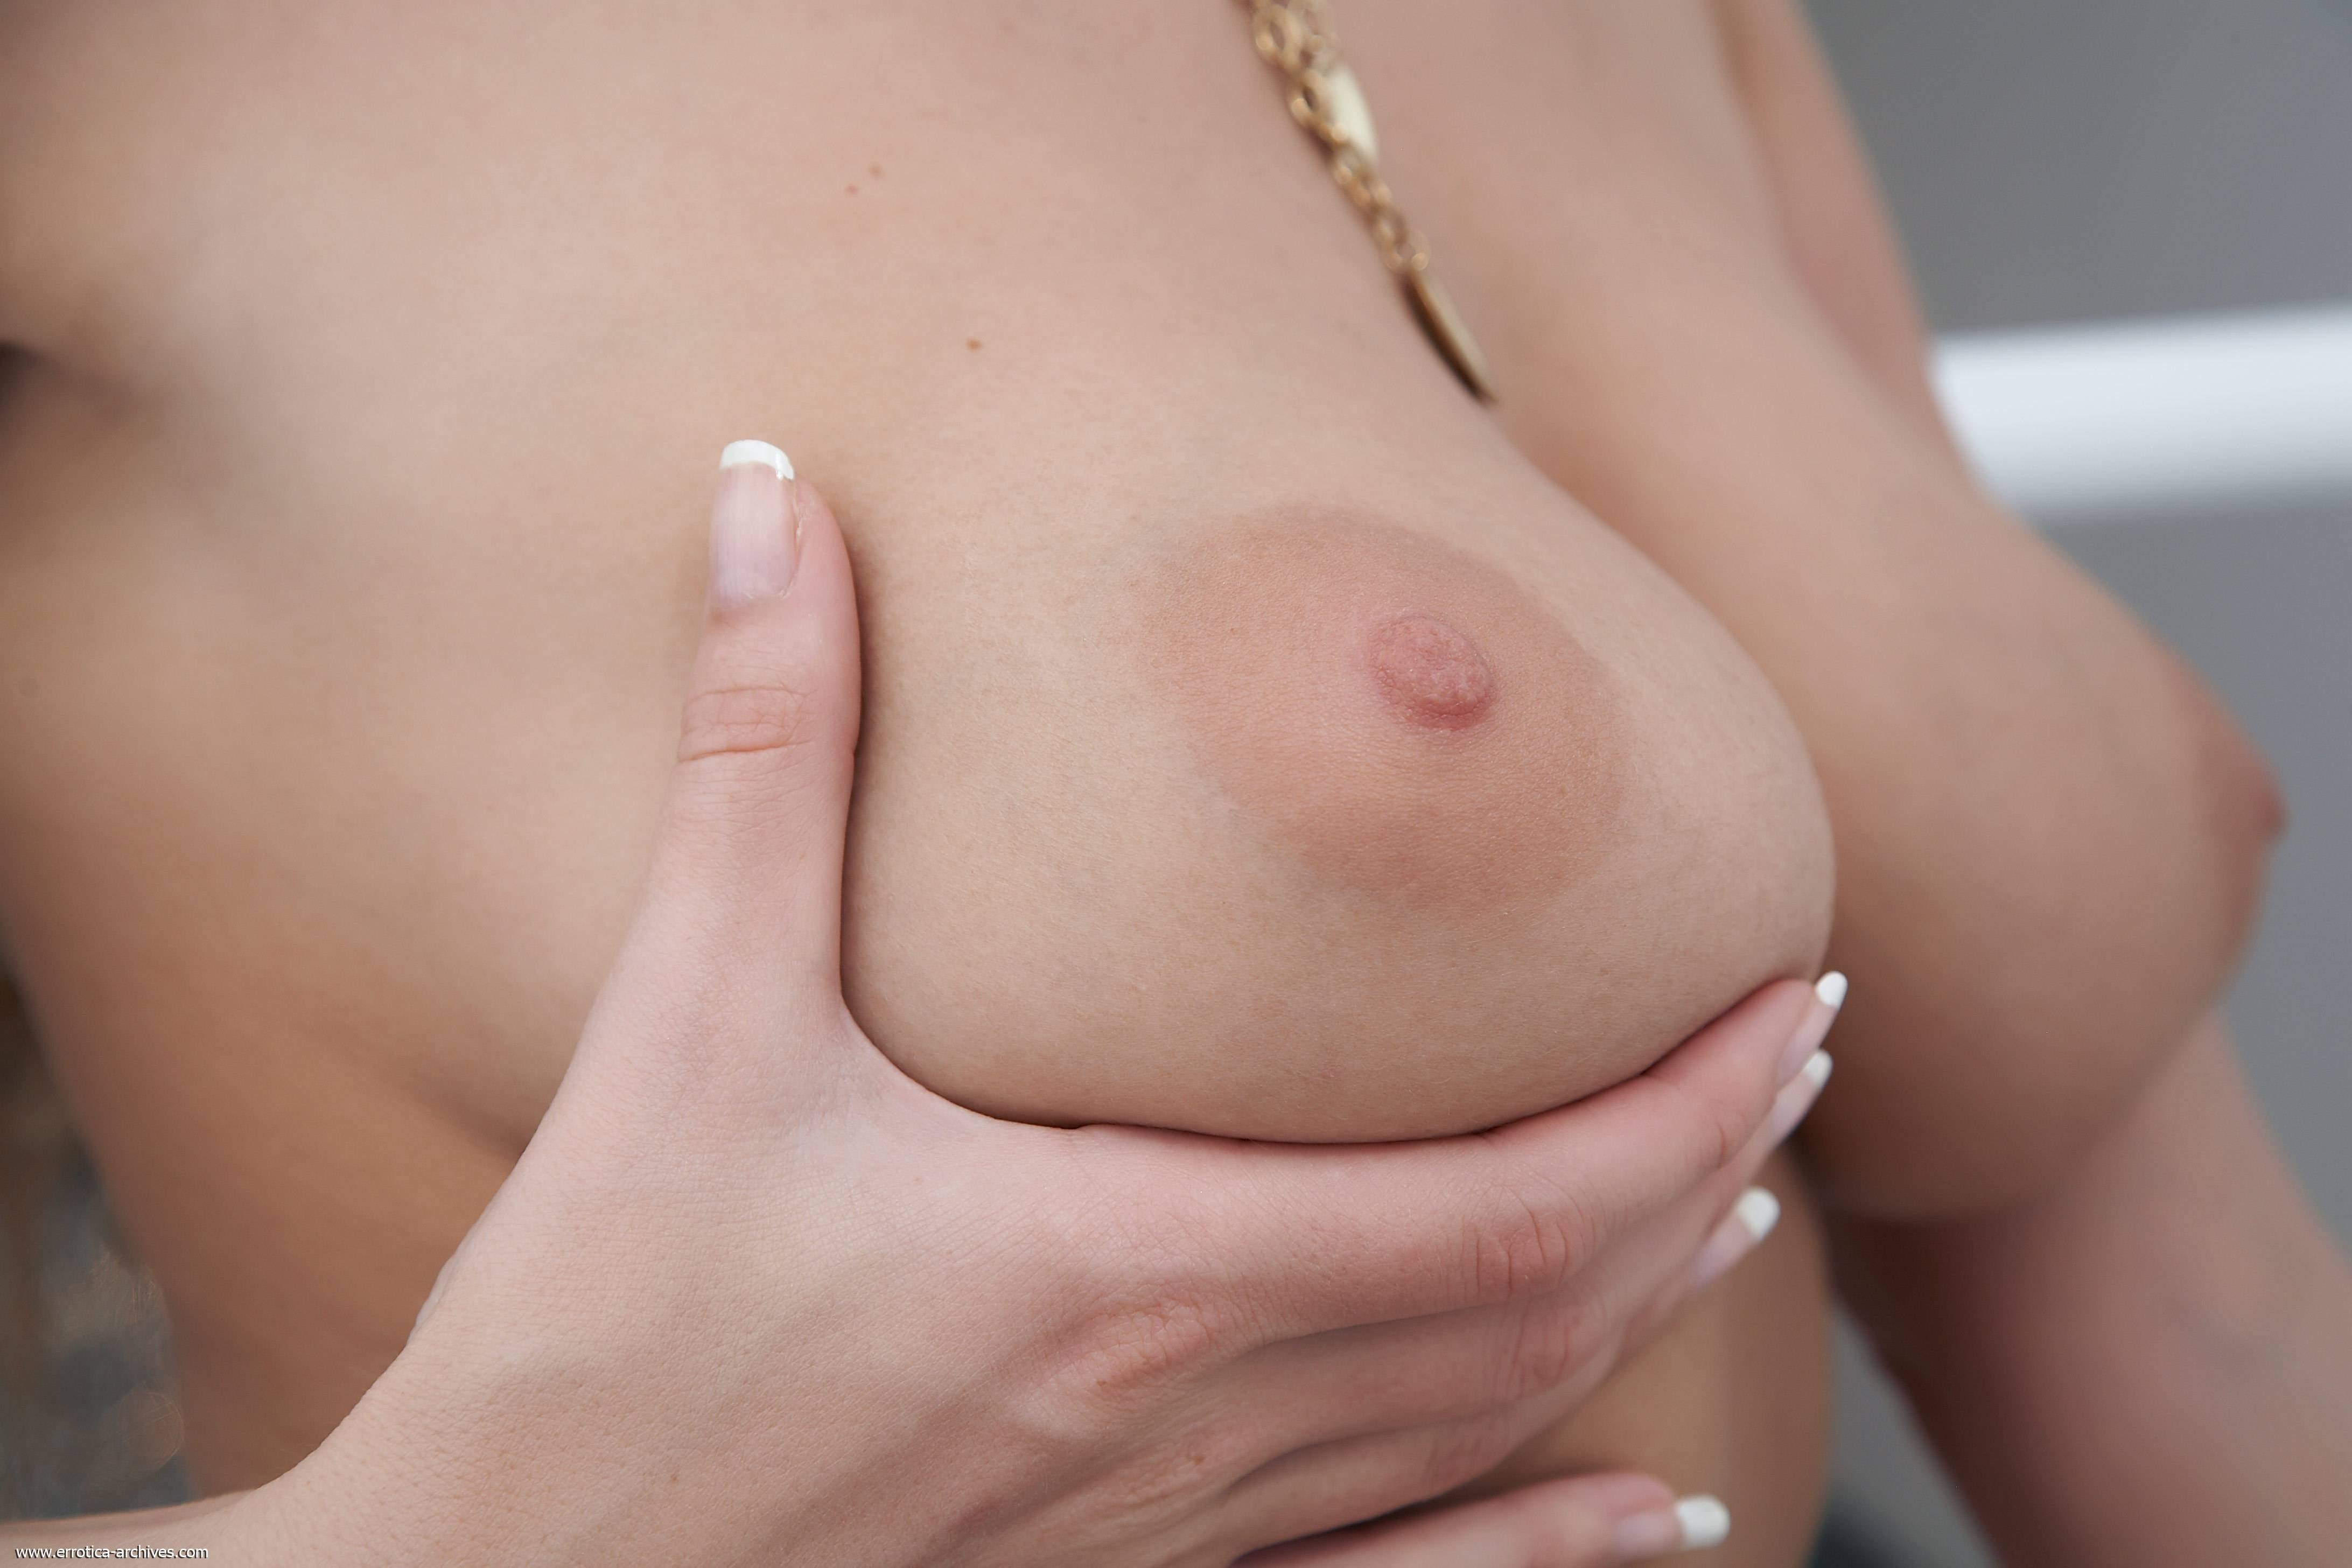 Woman crushes objects using her breasts